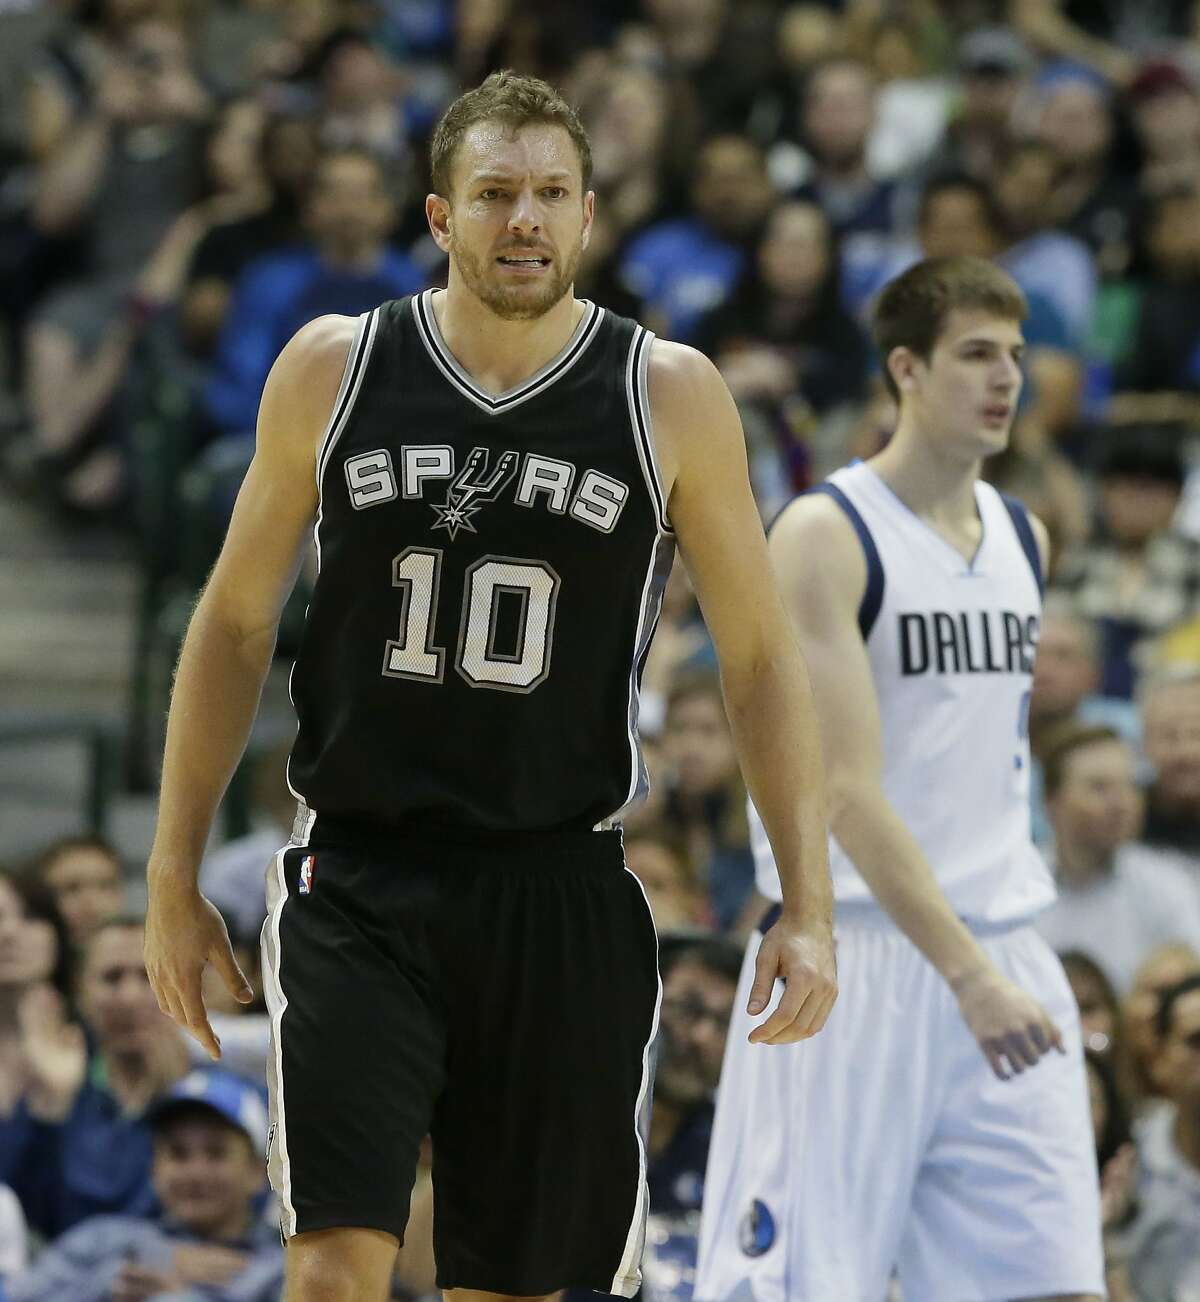 San Antonio Spurs forward David Lee (10) heads to the bench for a time out during the first half of an NBA basketball game against the Dallas Mavericks in Dallas, Friday, April 7, 2017. (AP Photo/LM Otero)